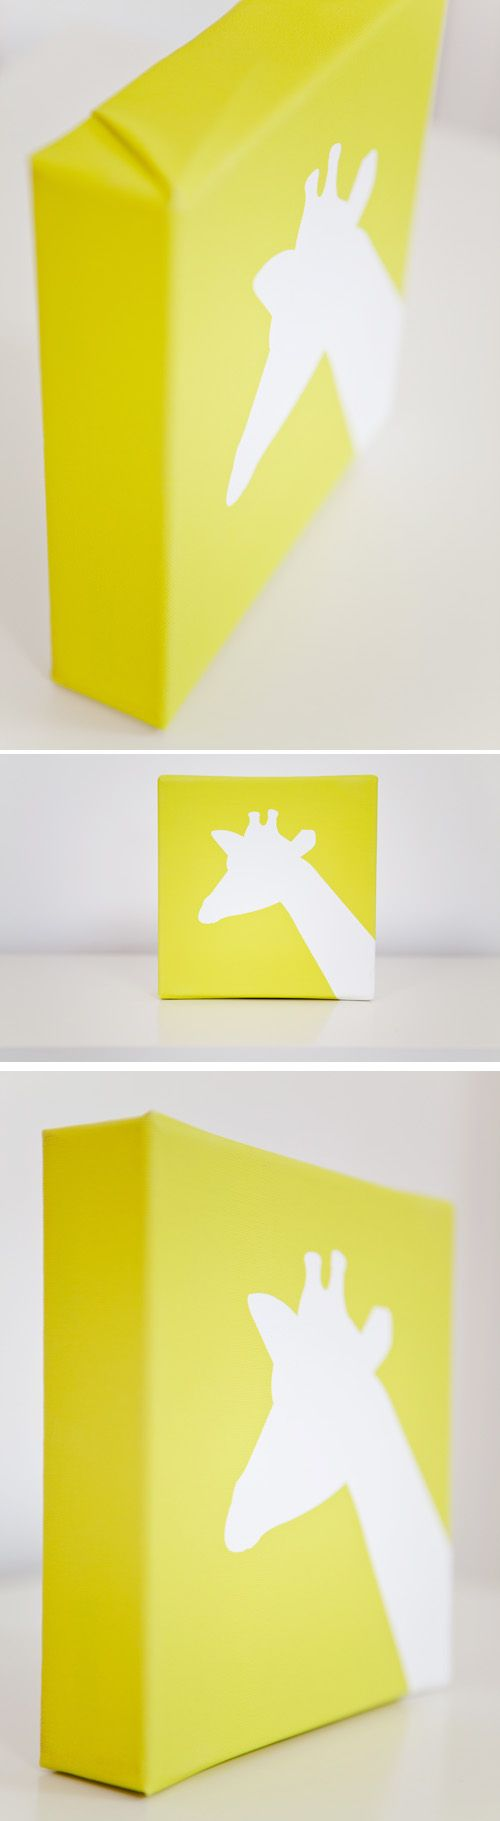 Cut out with cricut.   Paint Canvas.  Peel off vinyl to leave shadow of object.   Great craft for boys rooms